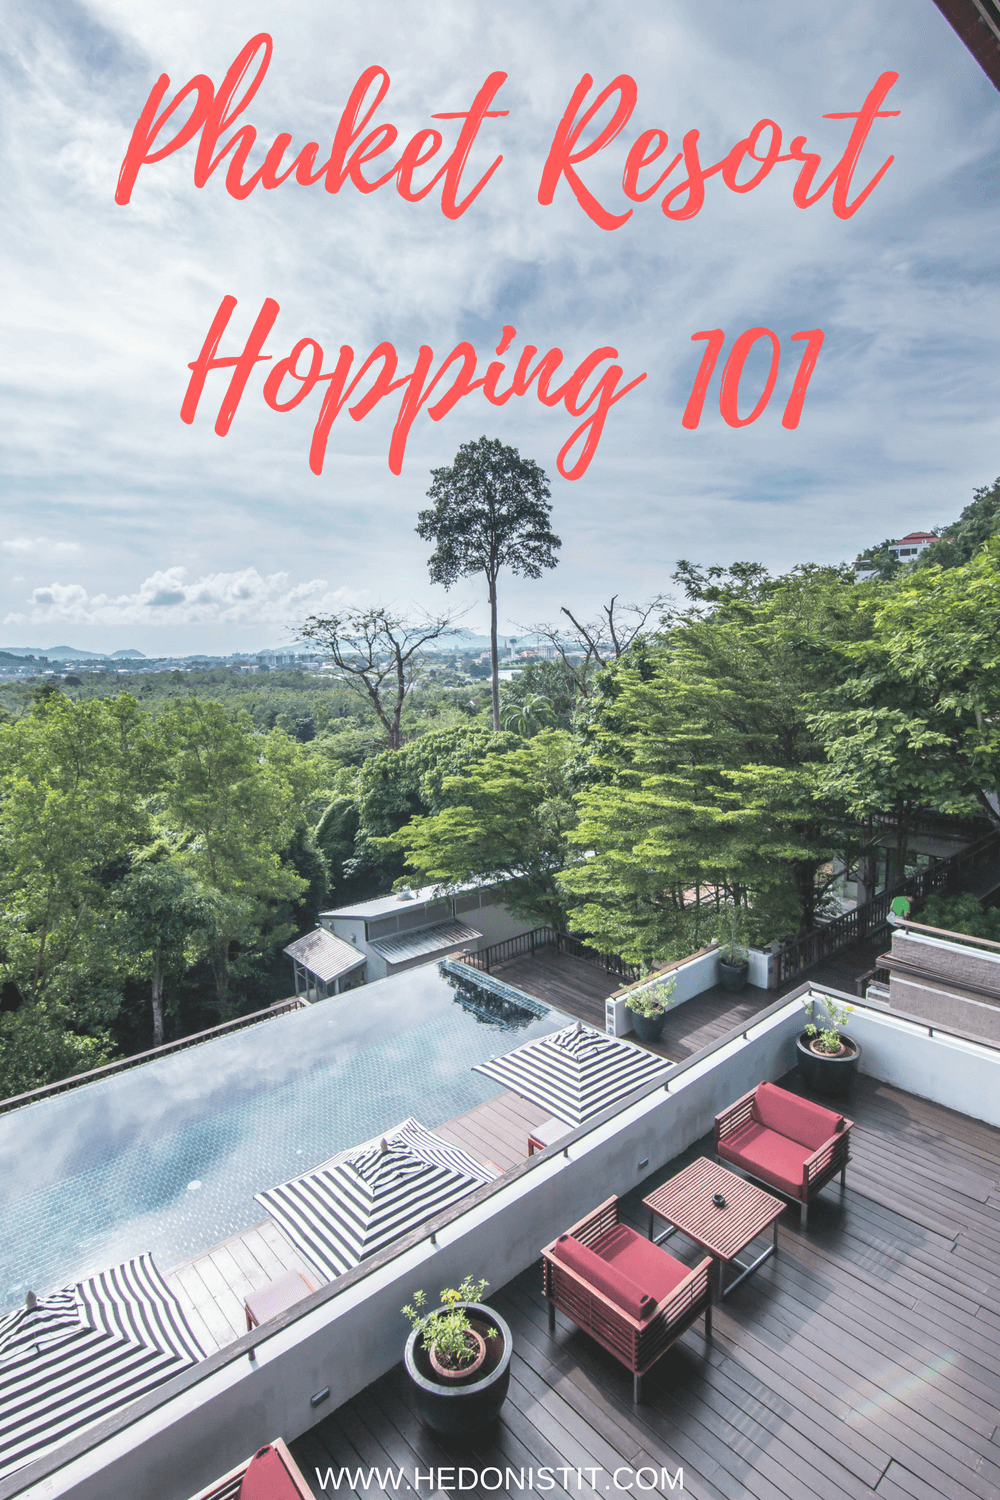 Planning a trip to Phuket, Thailand? You have to check out these 4 amazing and luxurious hotels we stayed in for our honeymoon before booking your hotel! www.hedonistit.com